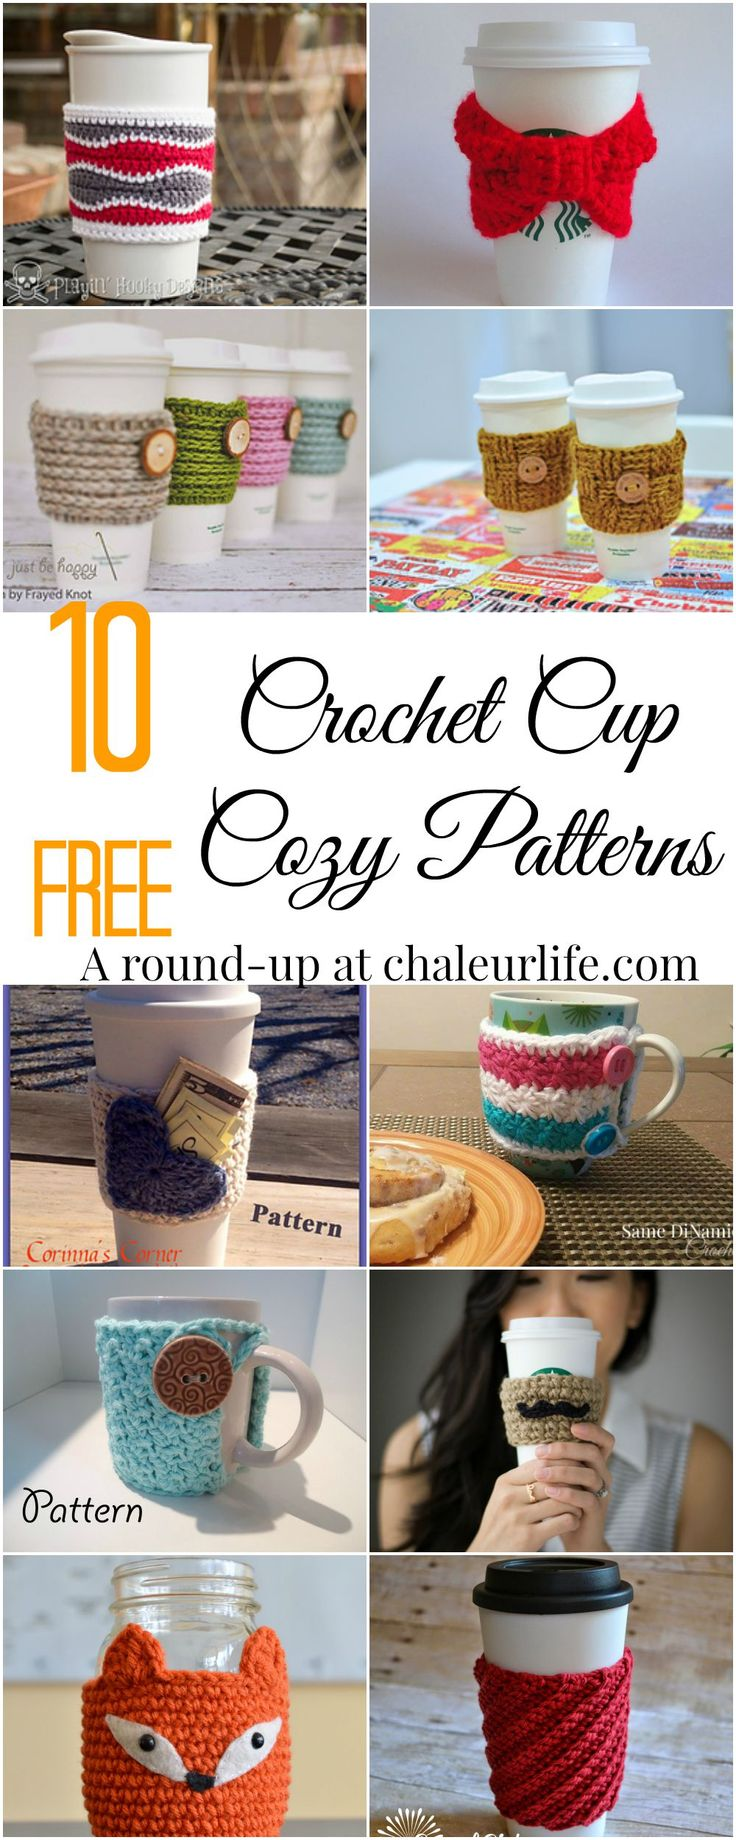 10 Free Crochet Cup Cozy Patterns.  Perfect for a quick and easy DIY Christmas gift!